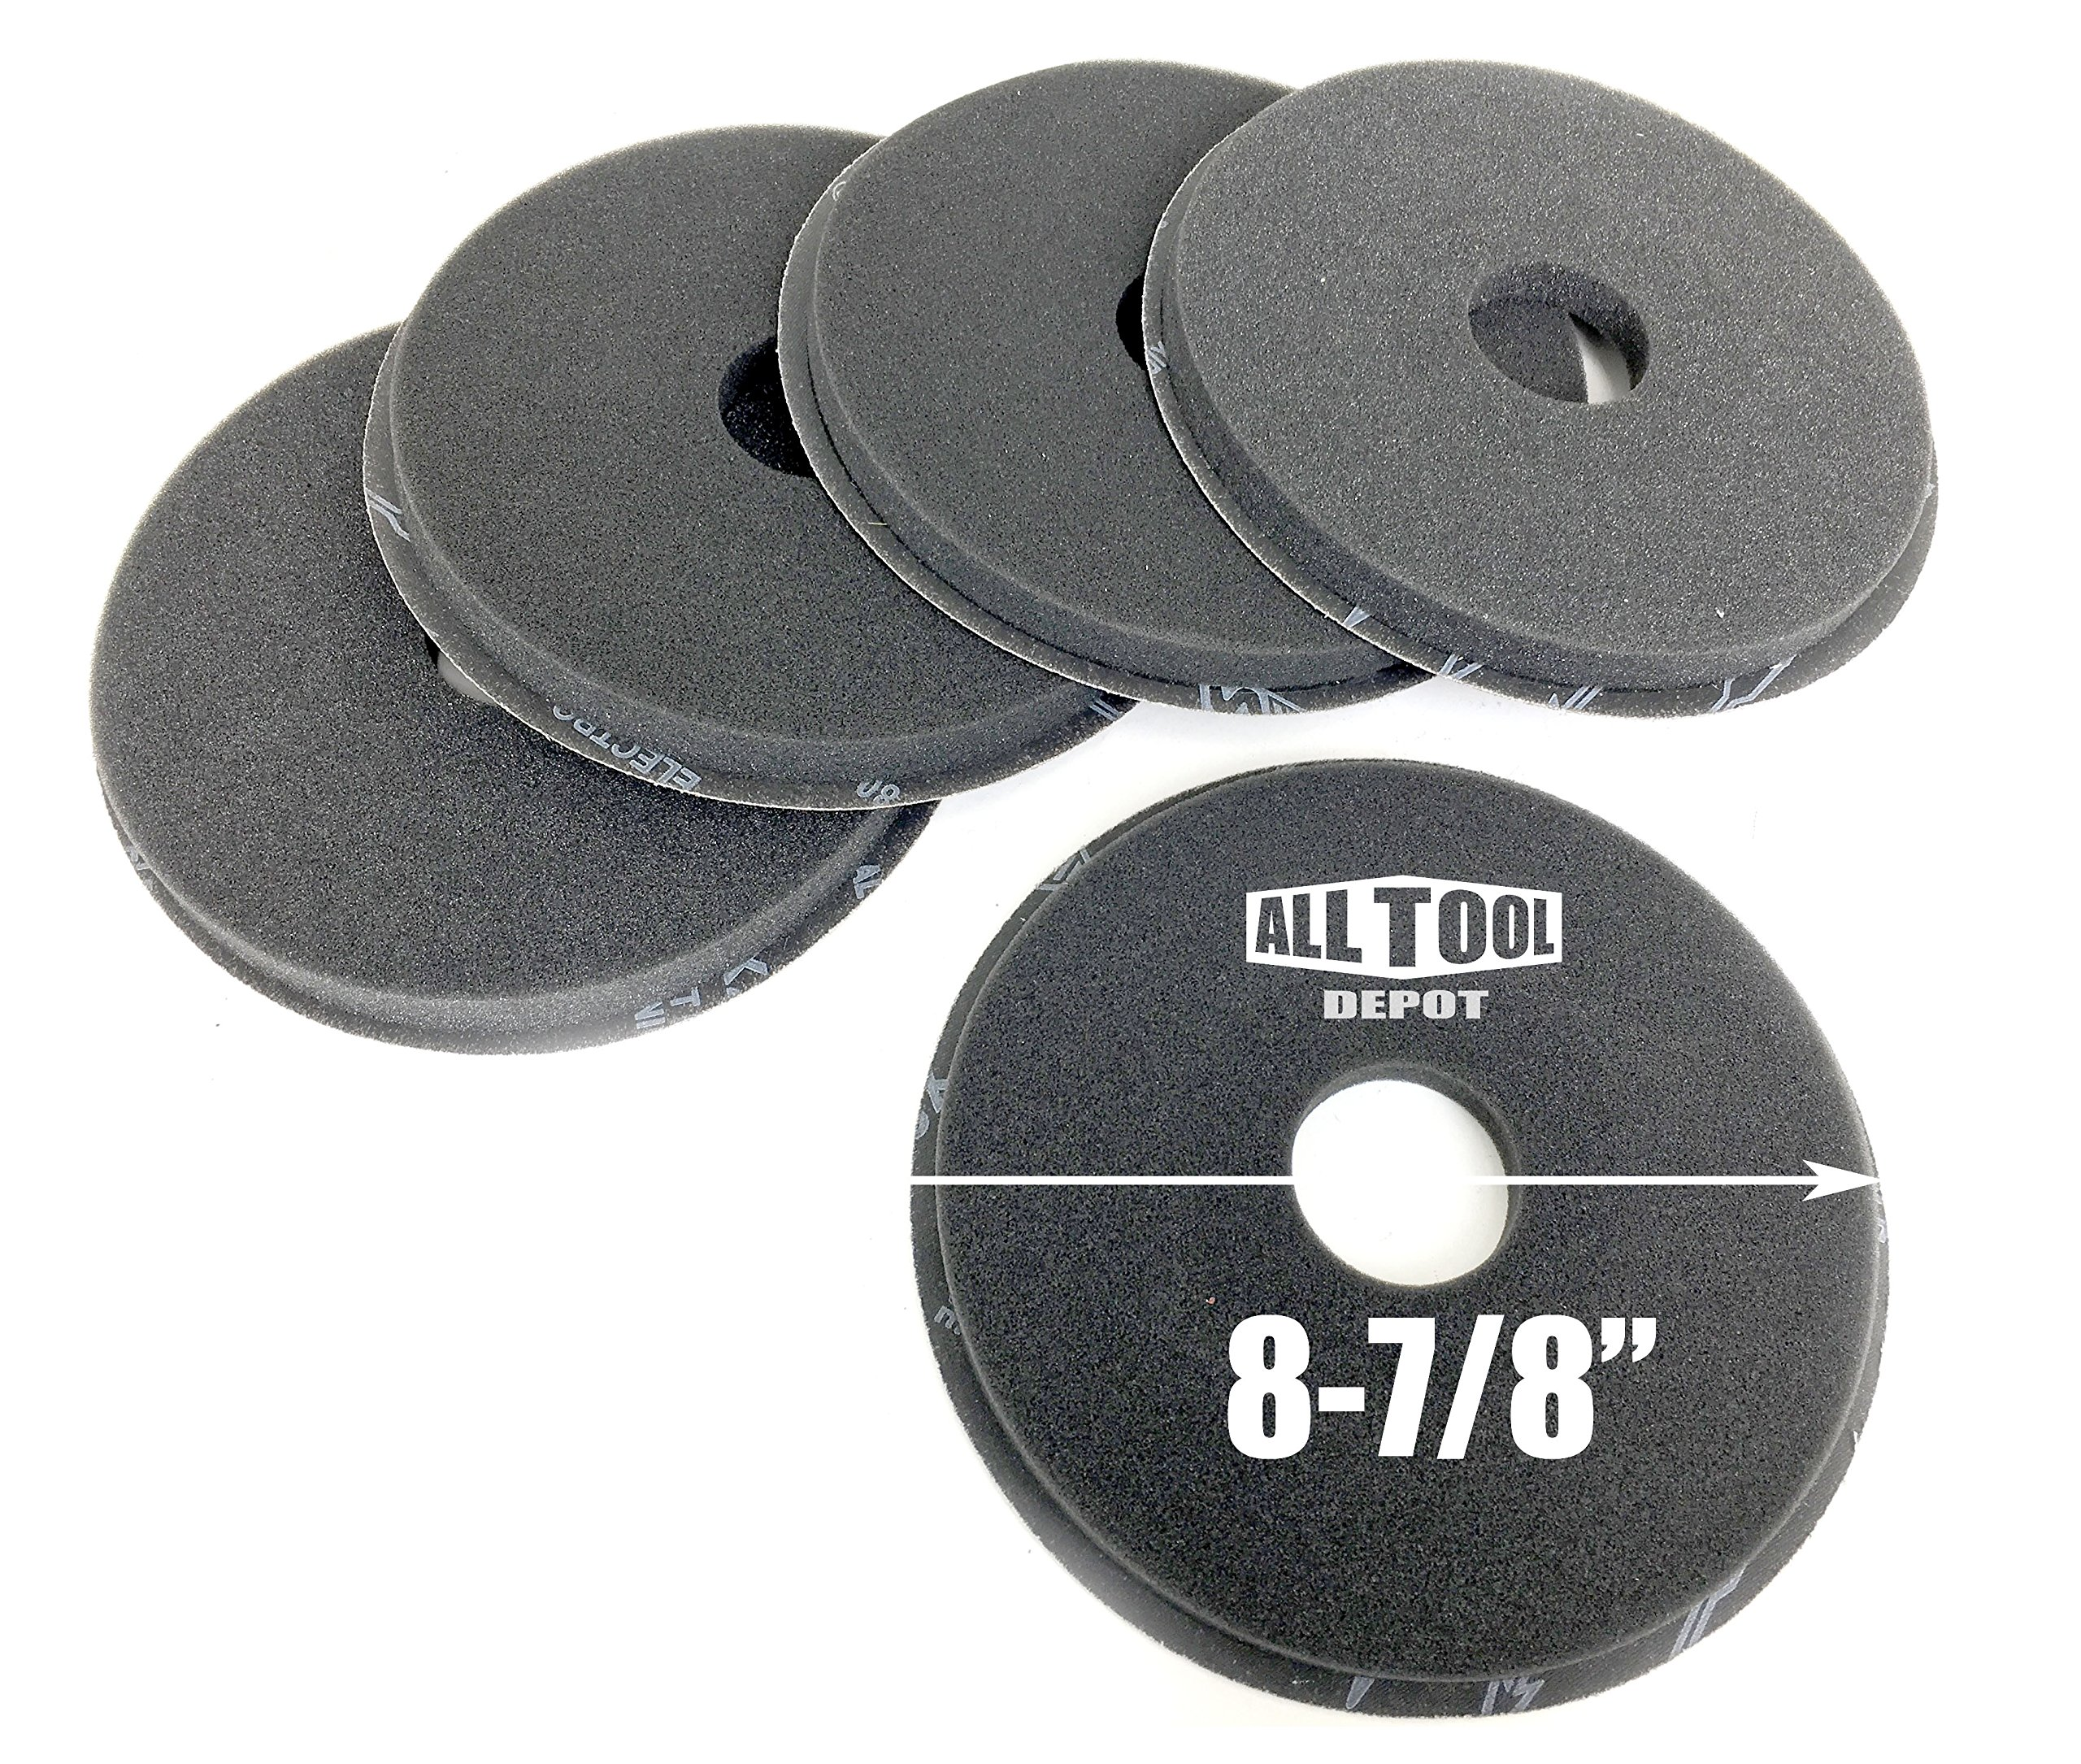 Best In USA PORTER-CABLE 7800 Drywall Sander 180 Grit Drywall Sanding Disc (5-Pack)